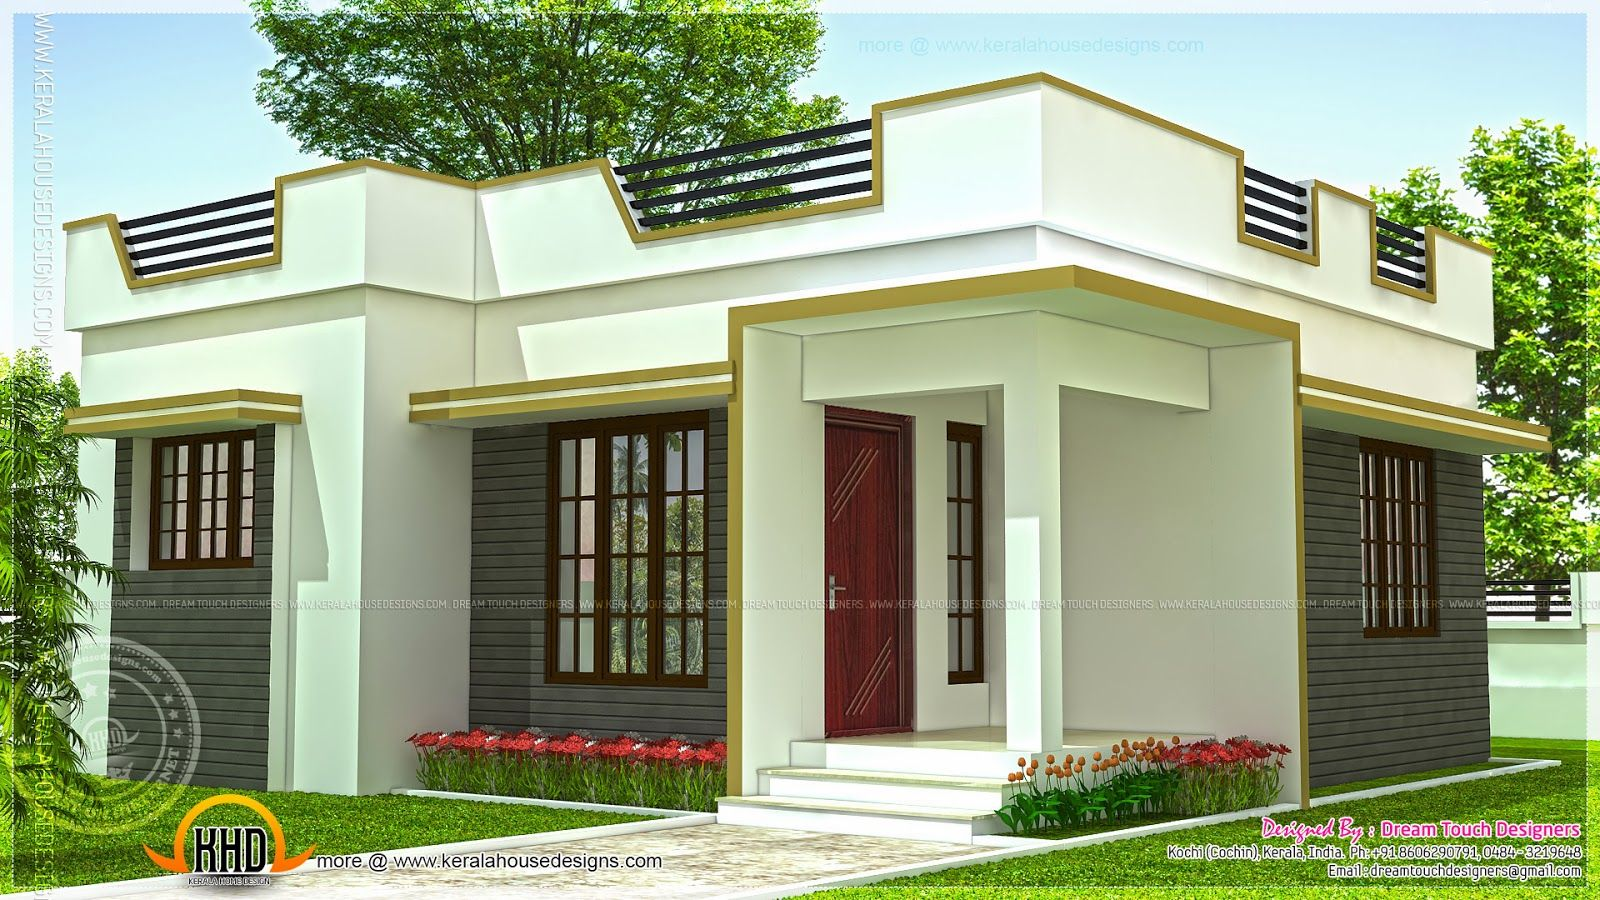 Lately 21 small house design kerala small house 1600 900 best house pinterest - Small homes design ideas ...